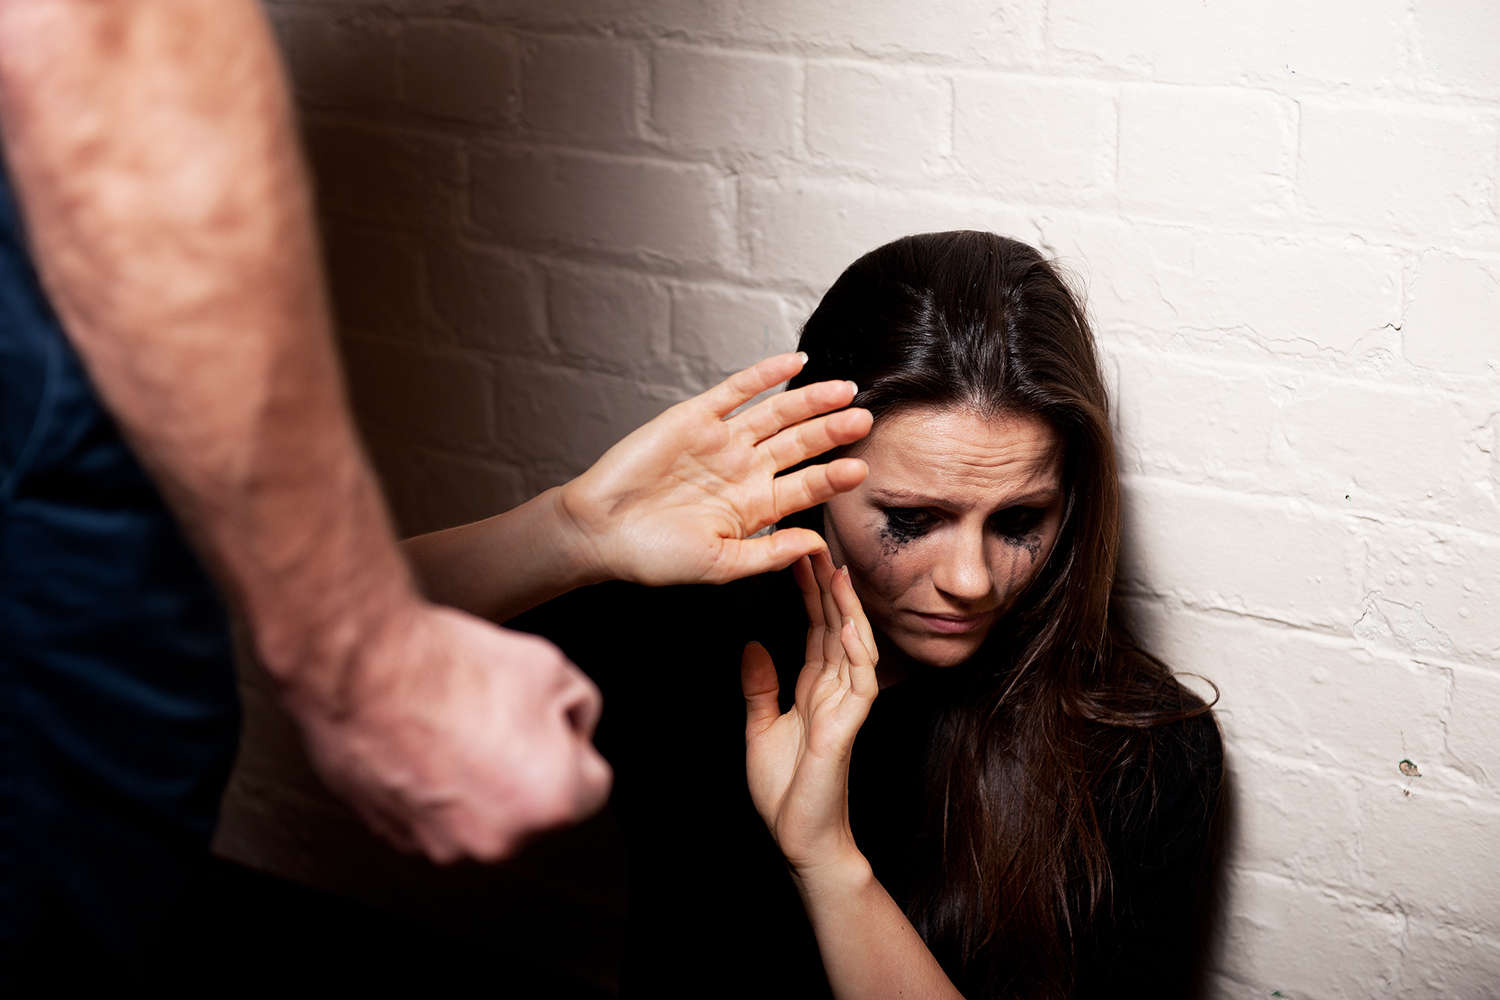 Young woman trying to protect herself from a man's clenched fist.